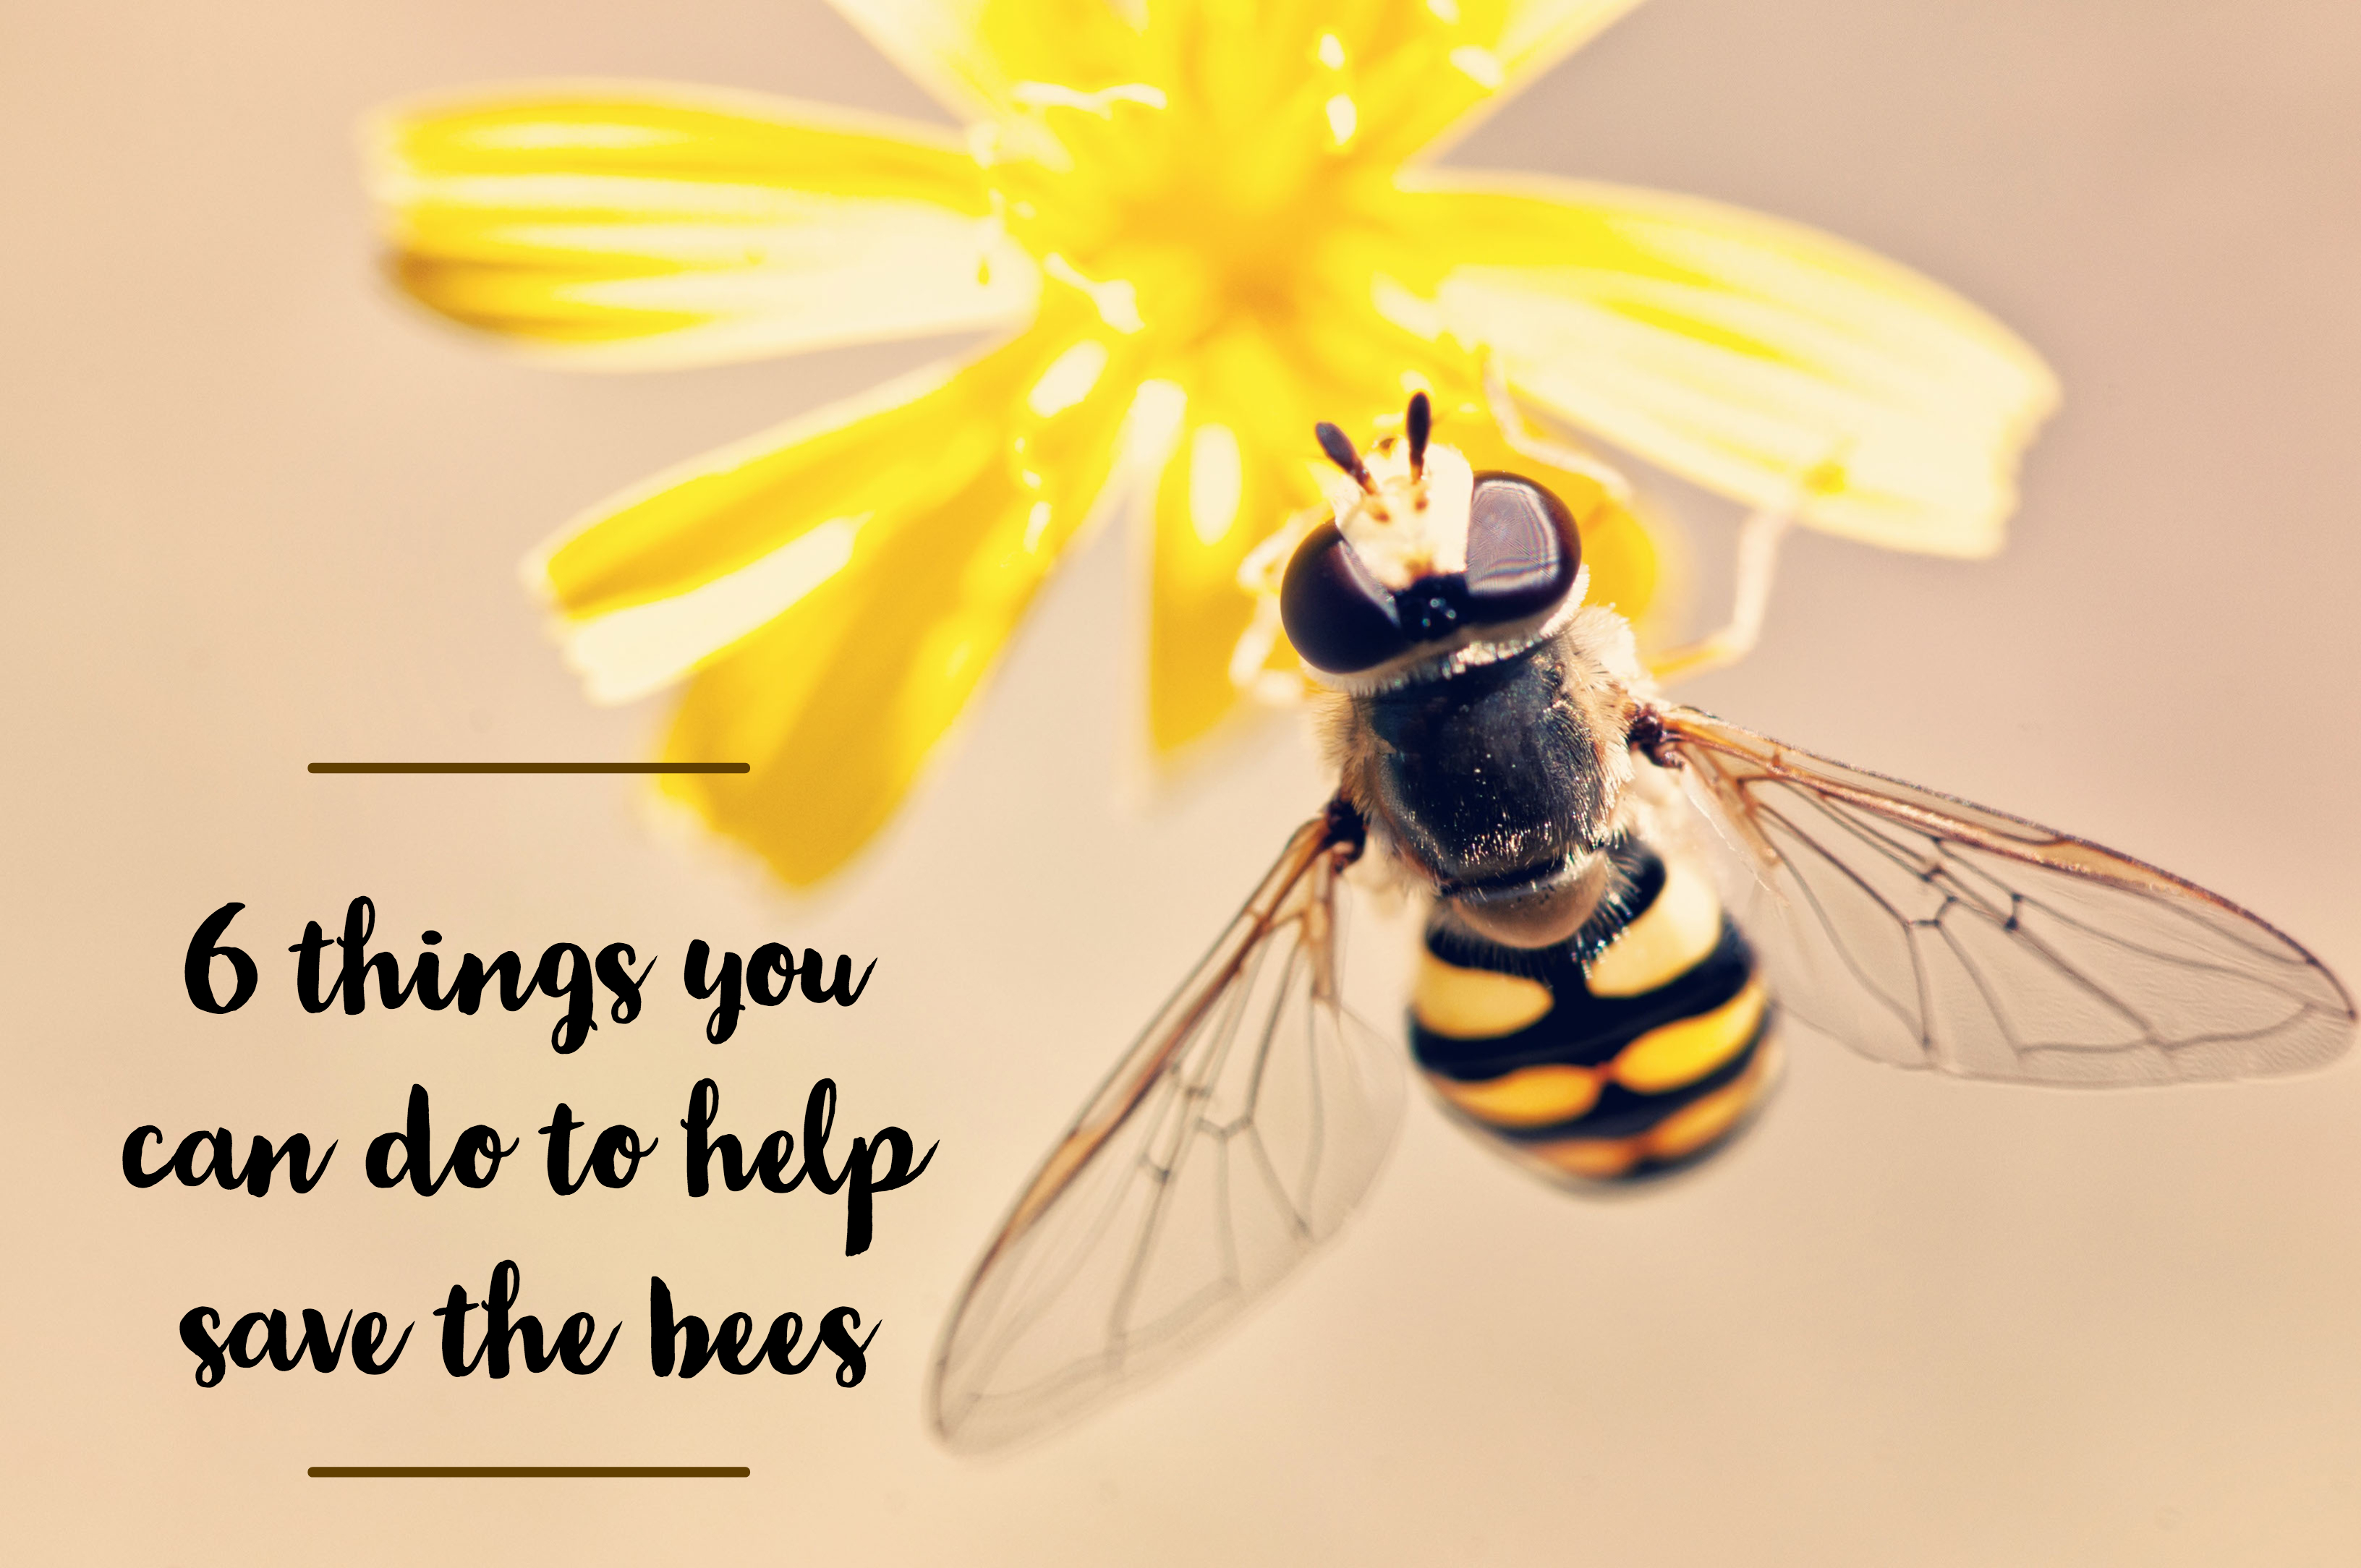 save the bees, 6 things you can do to save the bees, bumble bee, flower